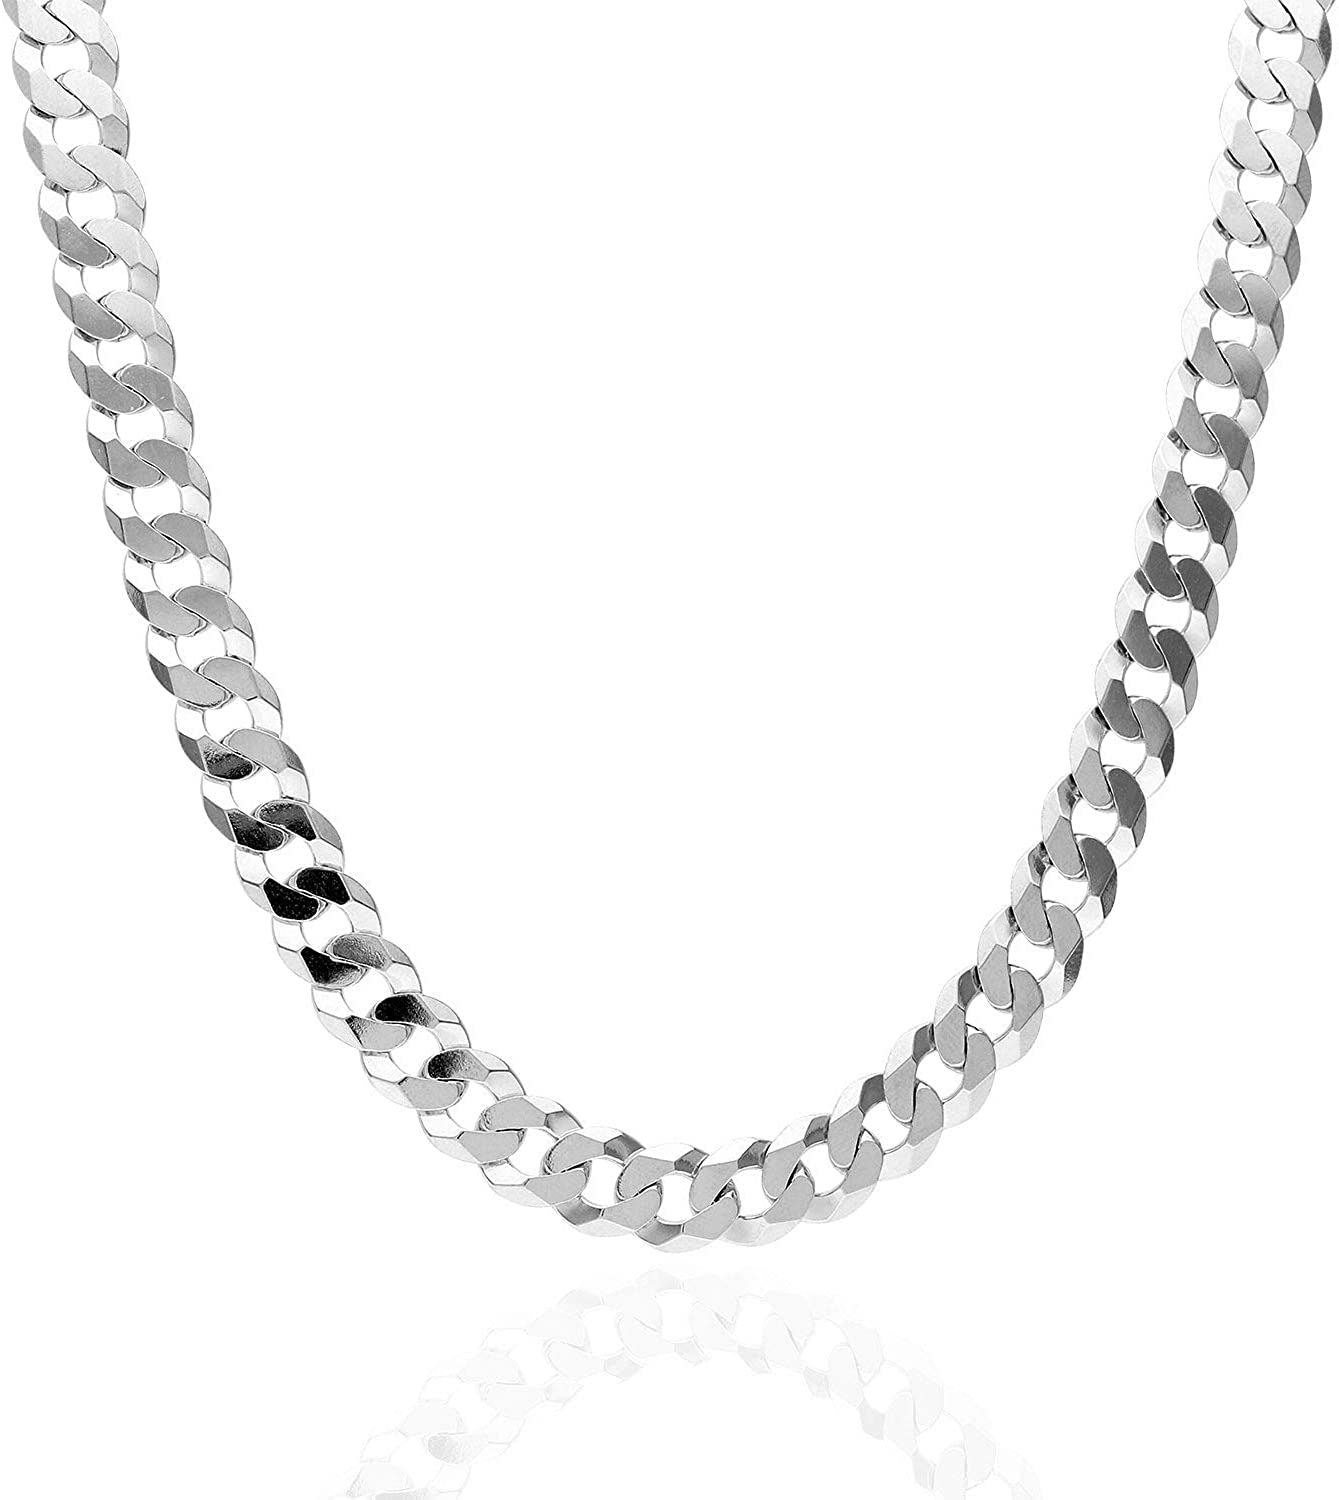 925 Sterling Silver 7mm Solid Cuban Link Chain Necklace 20-30